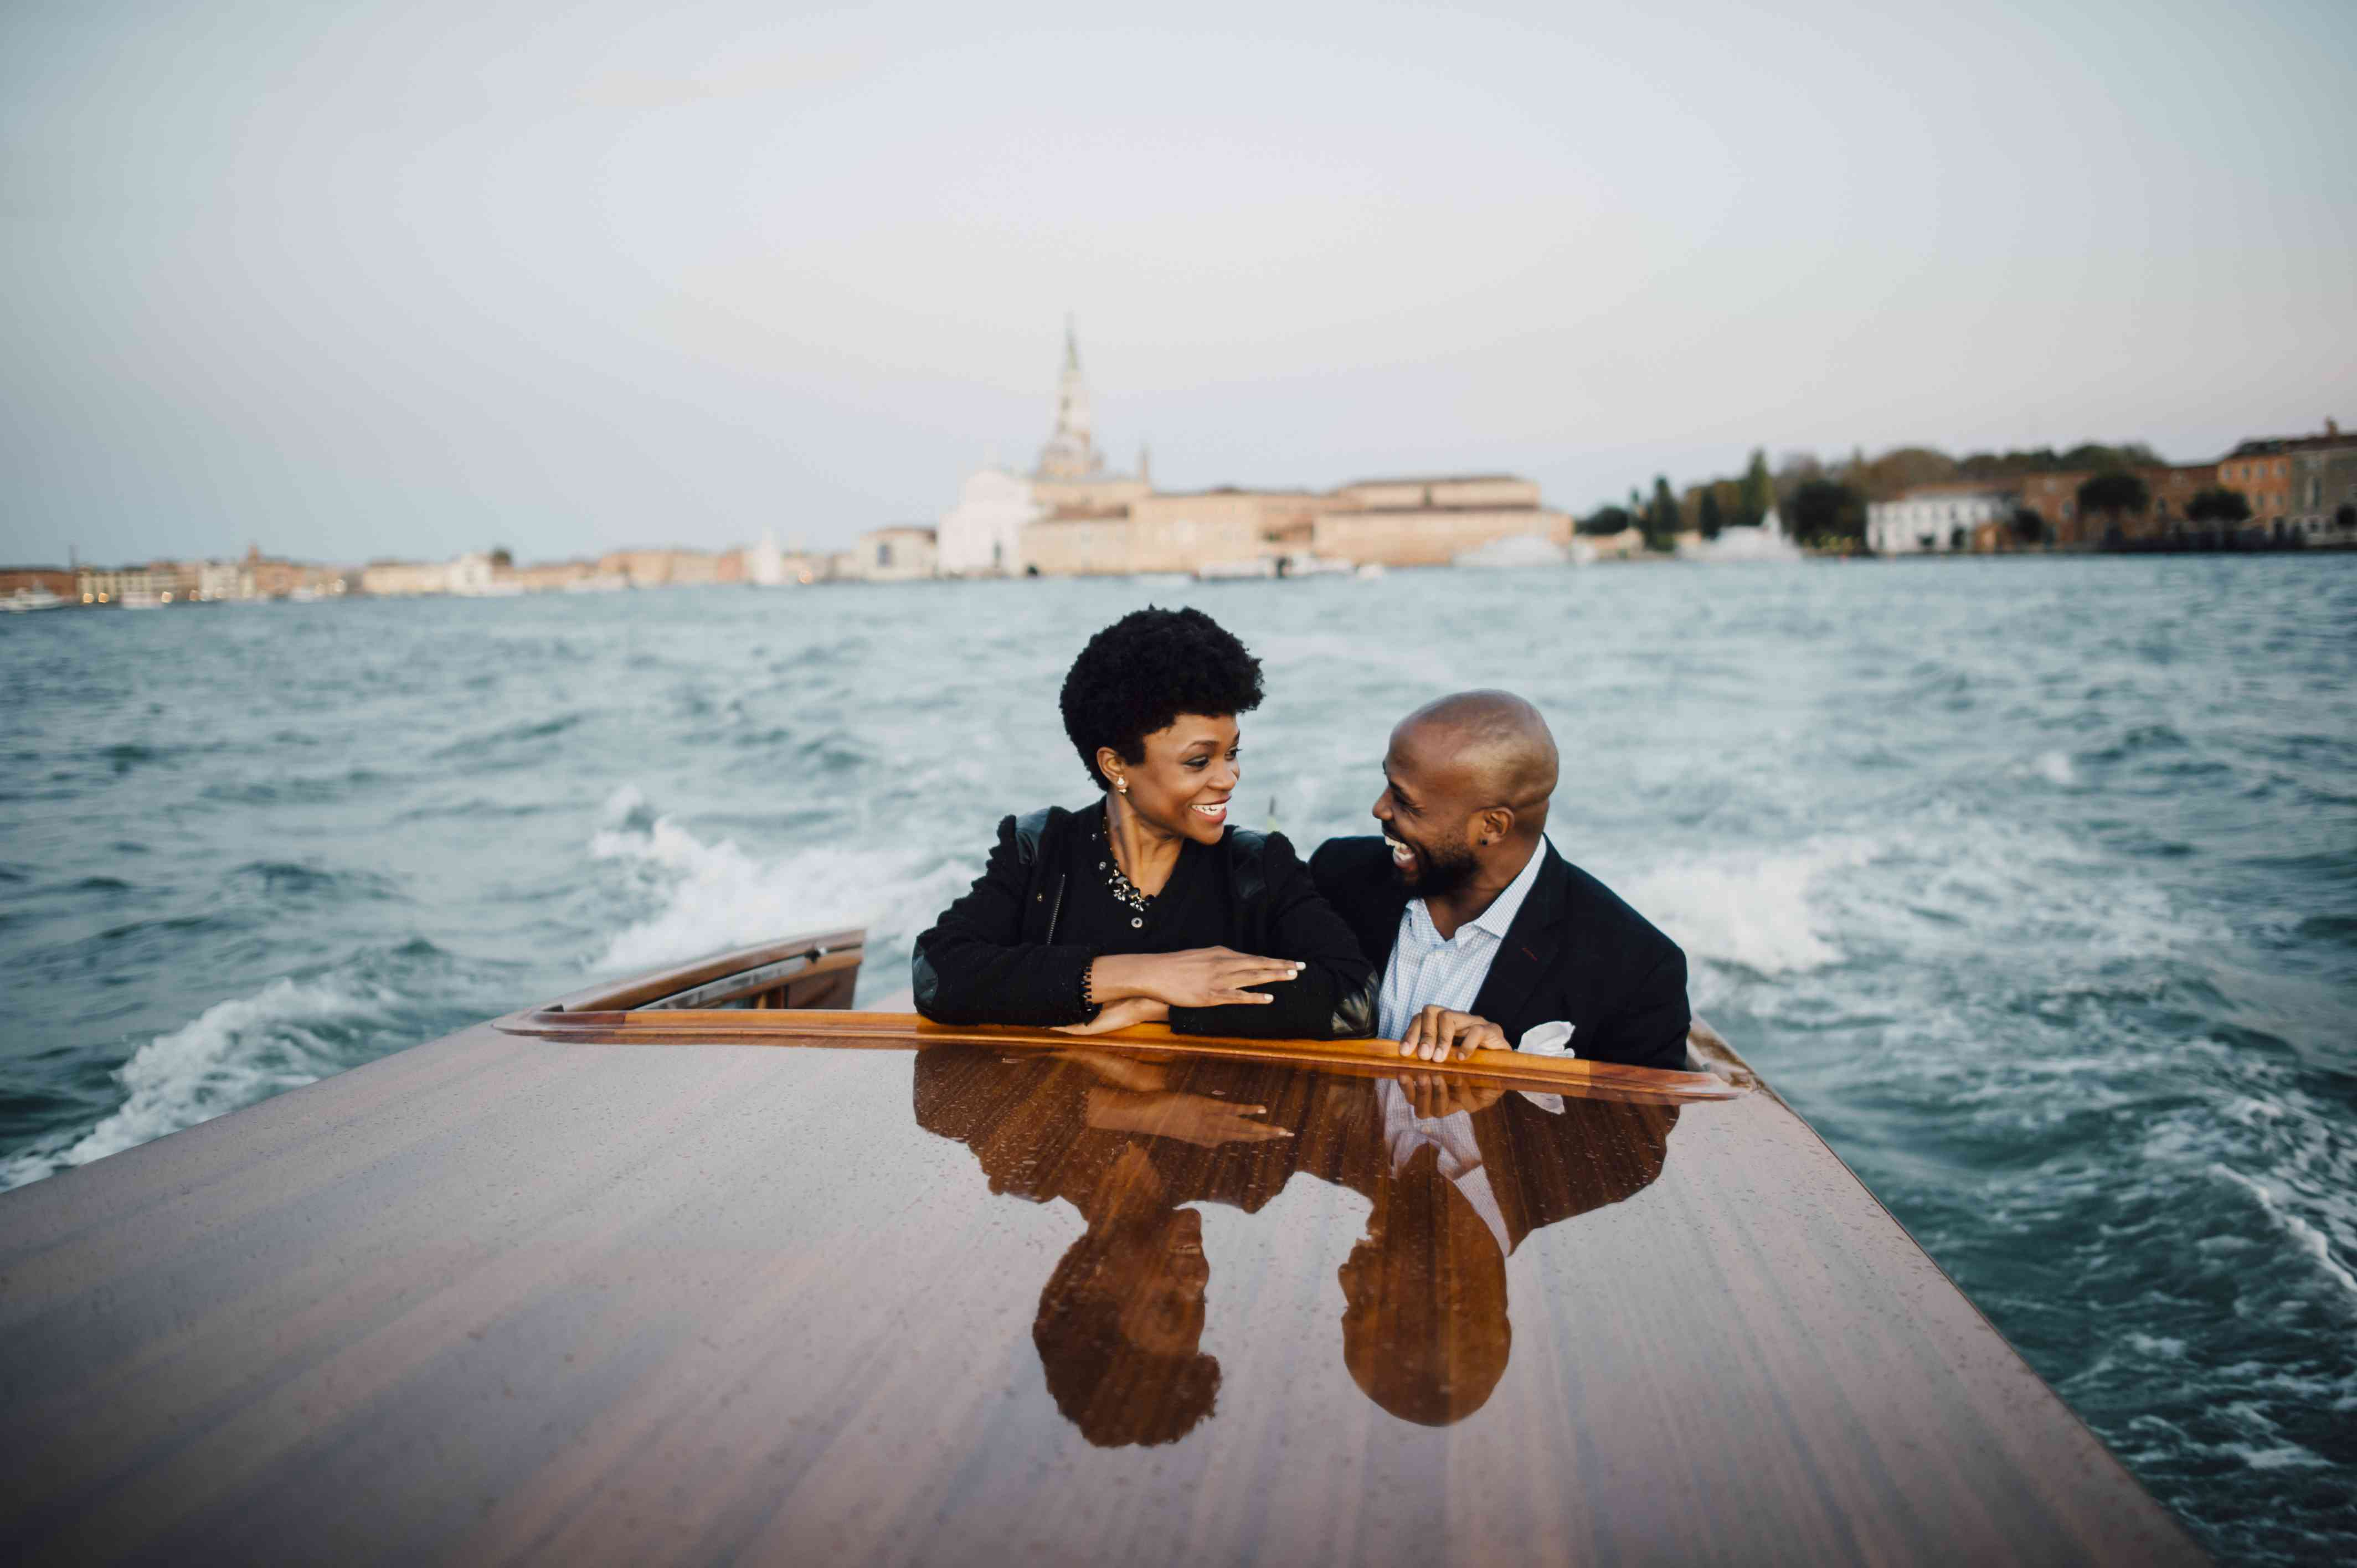 Couple on a speedboat